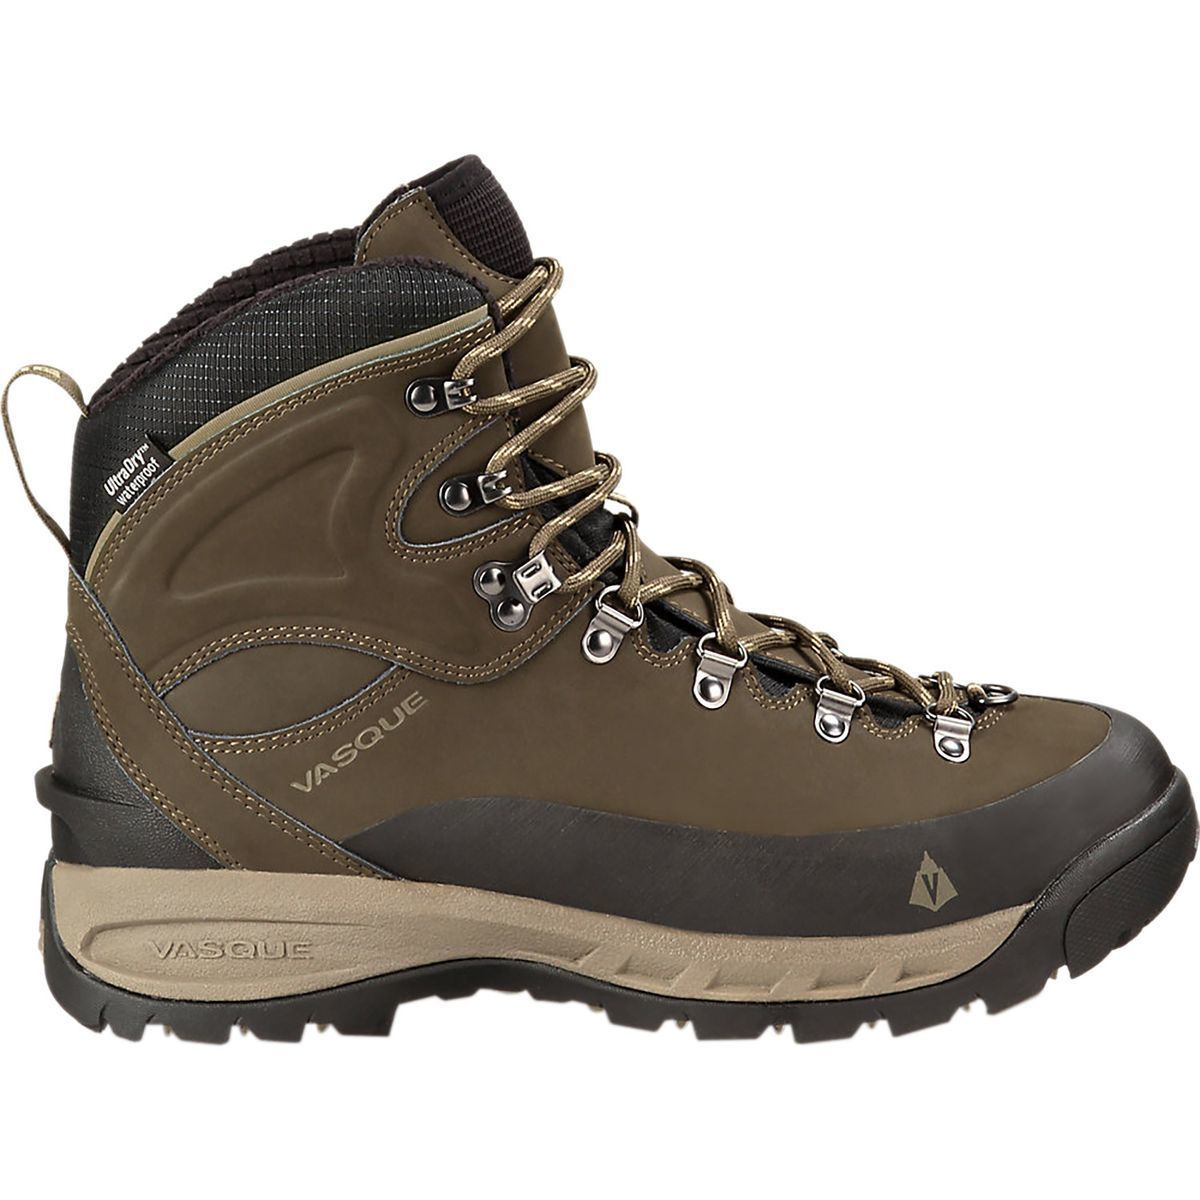 c8f3568332f Ozark Trail Hikers Reviews - Trailspace